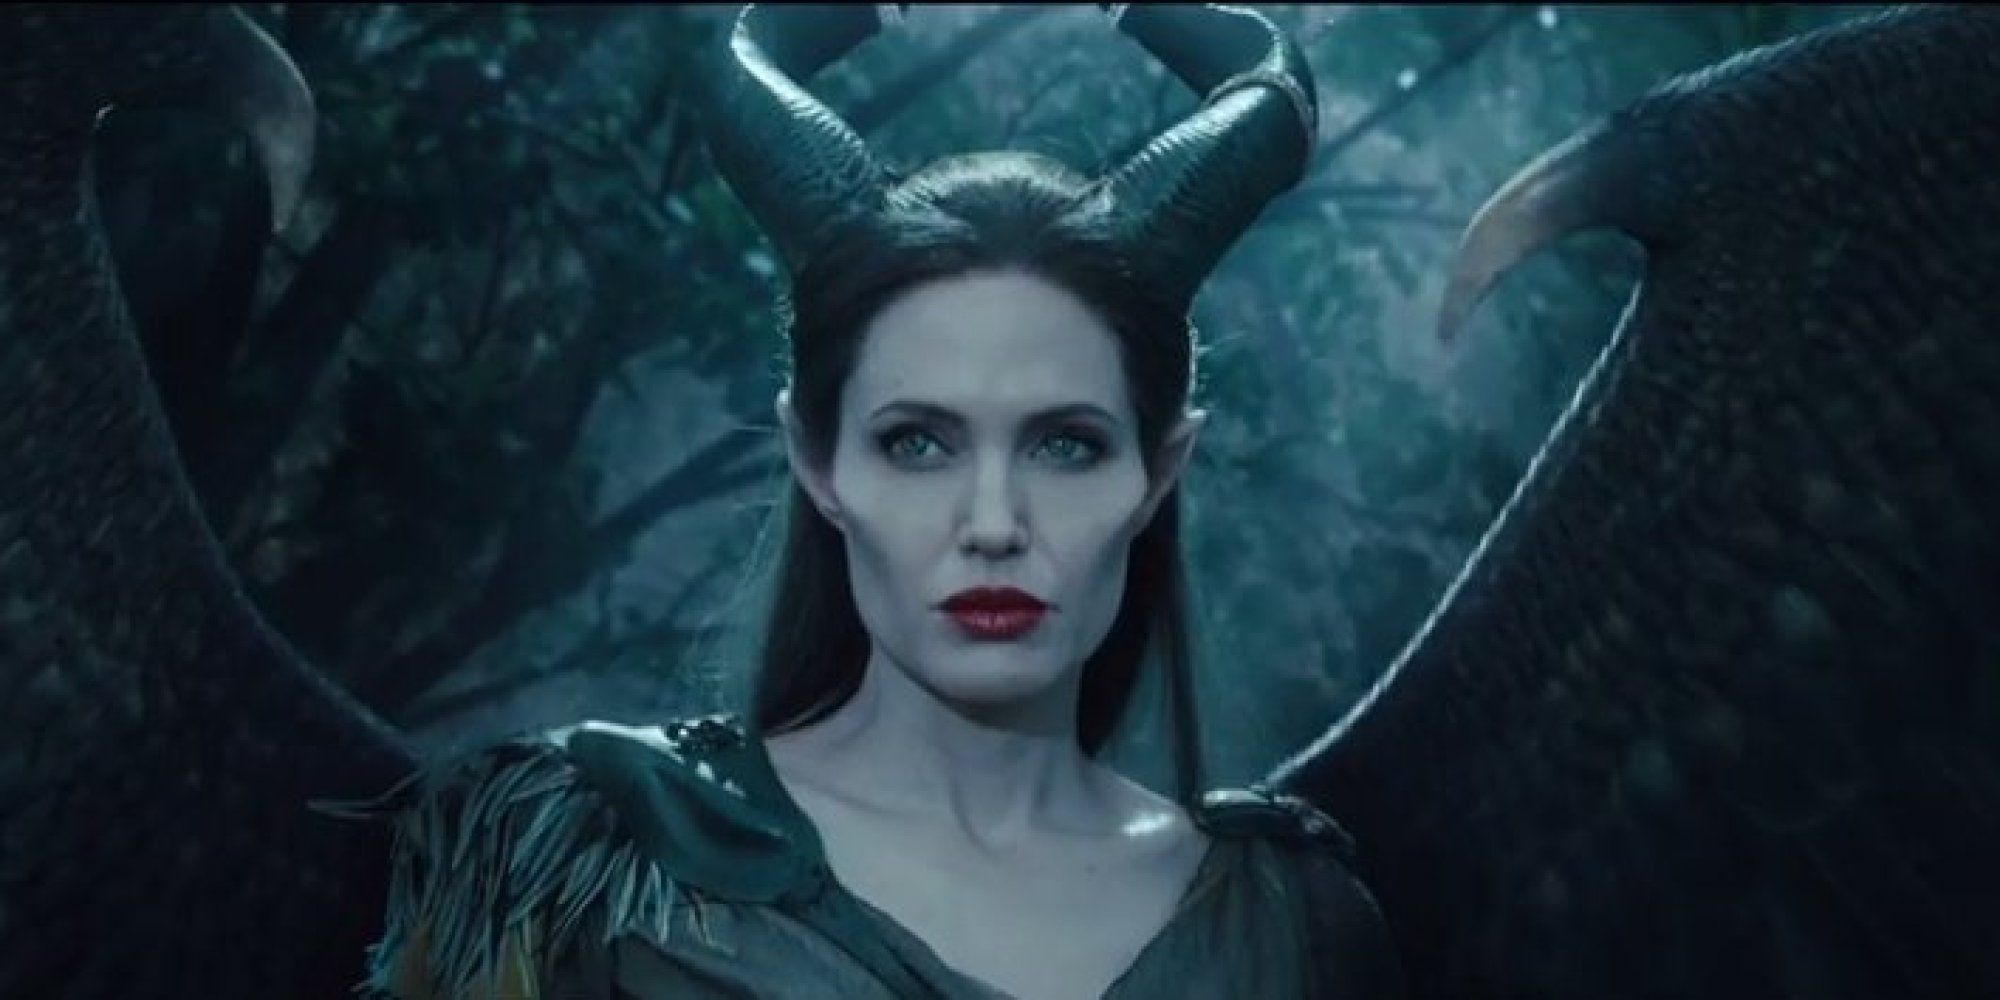 maleficent - photo #14